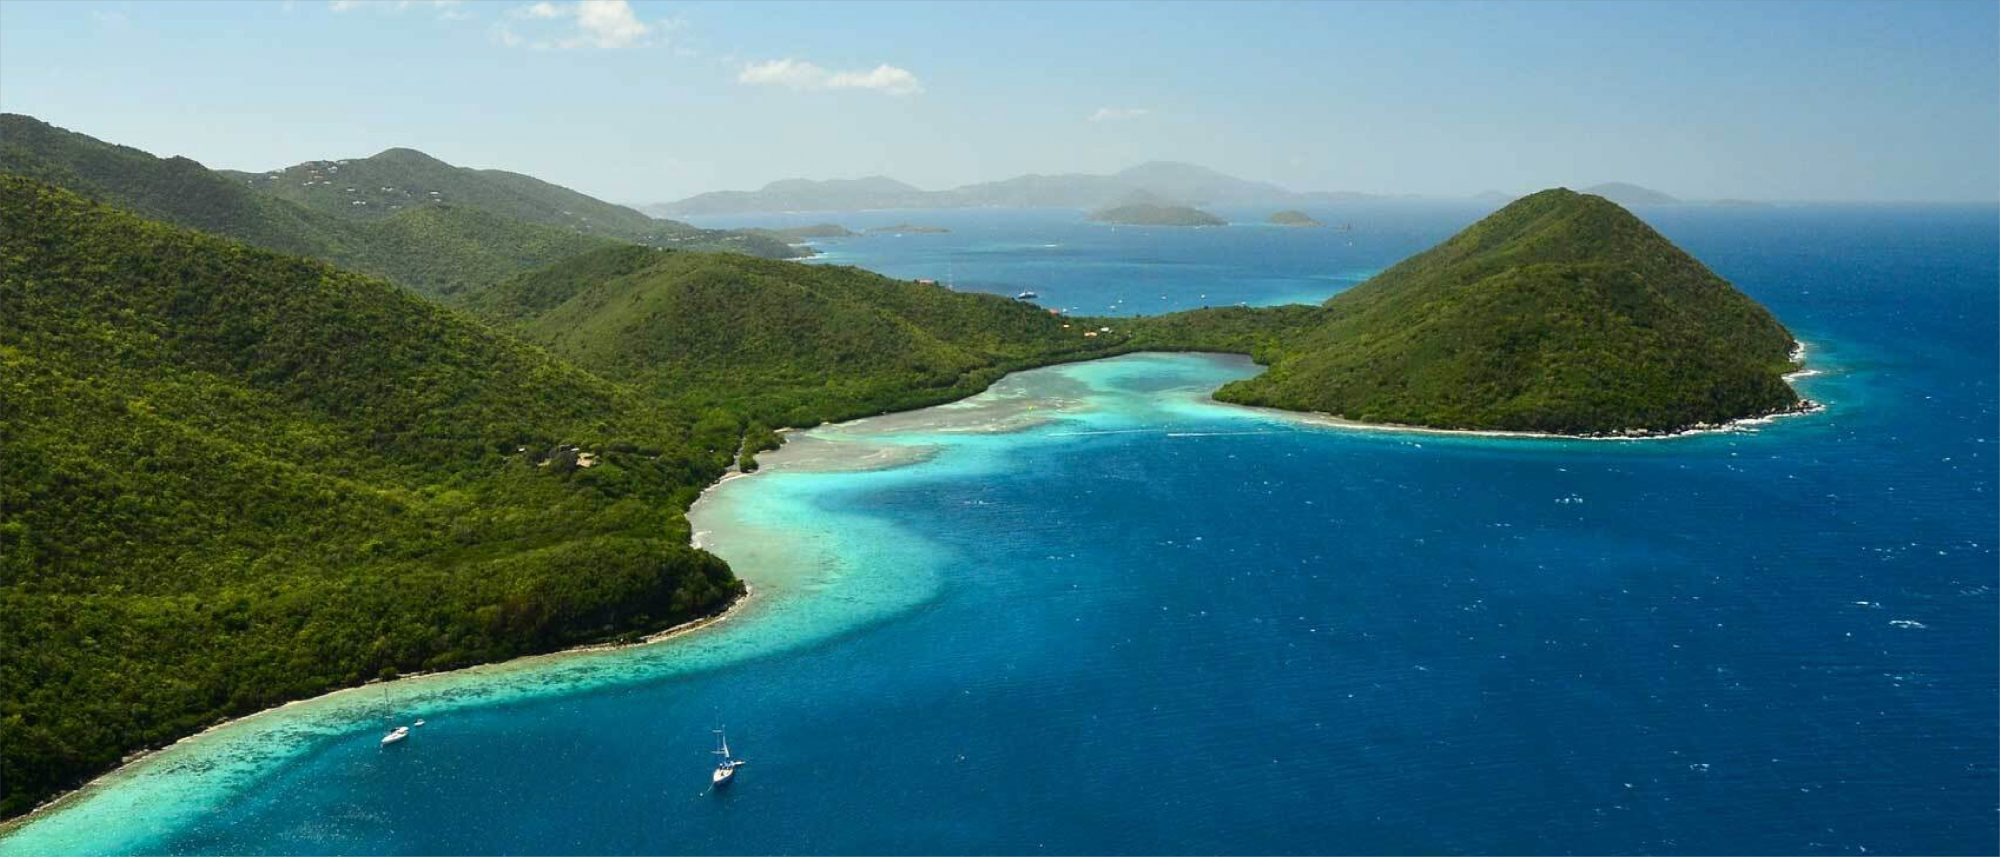 Beaches from St. John in the USVI